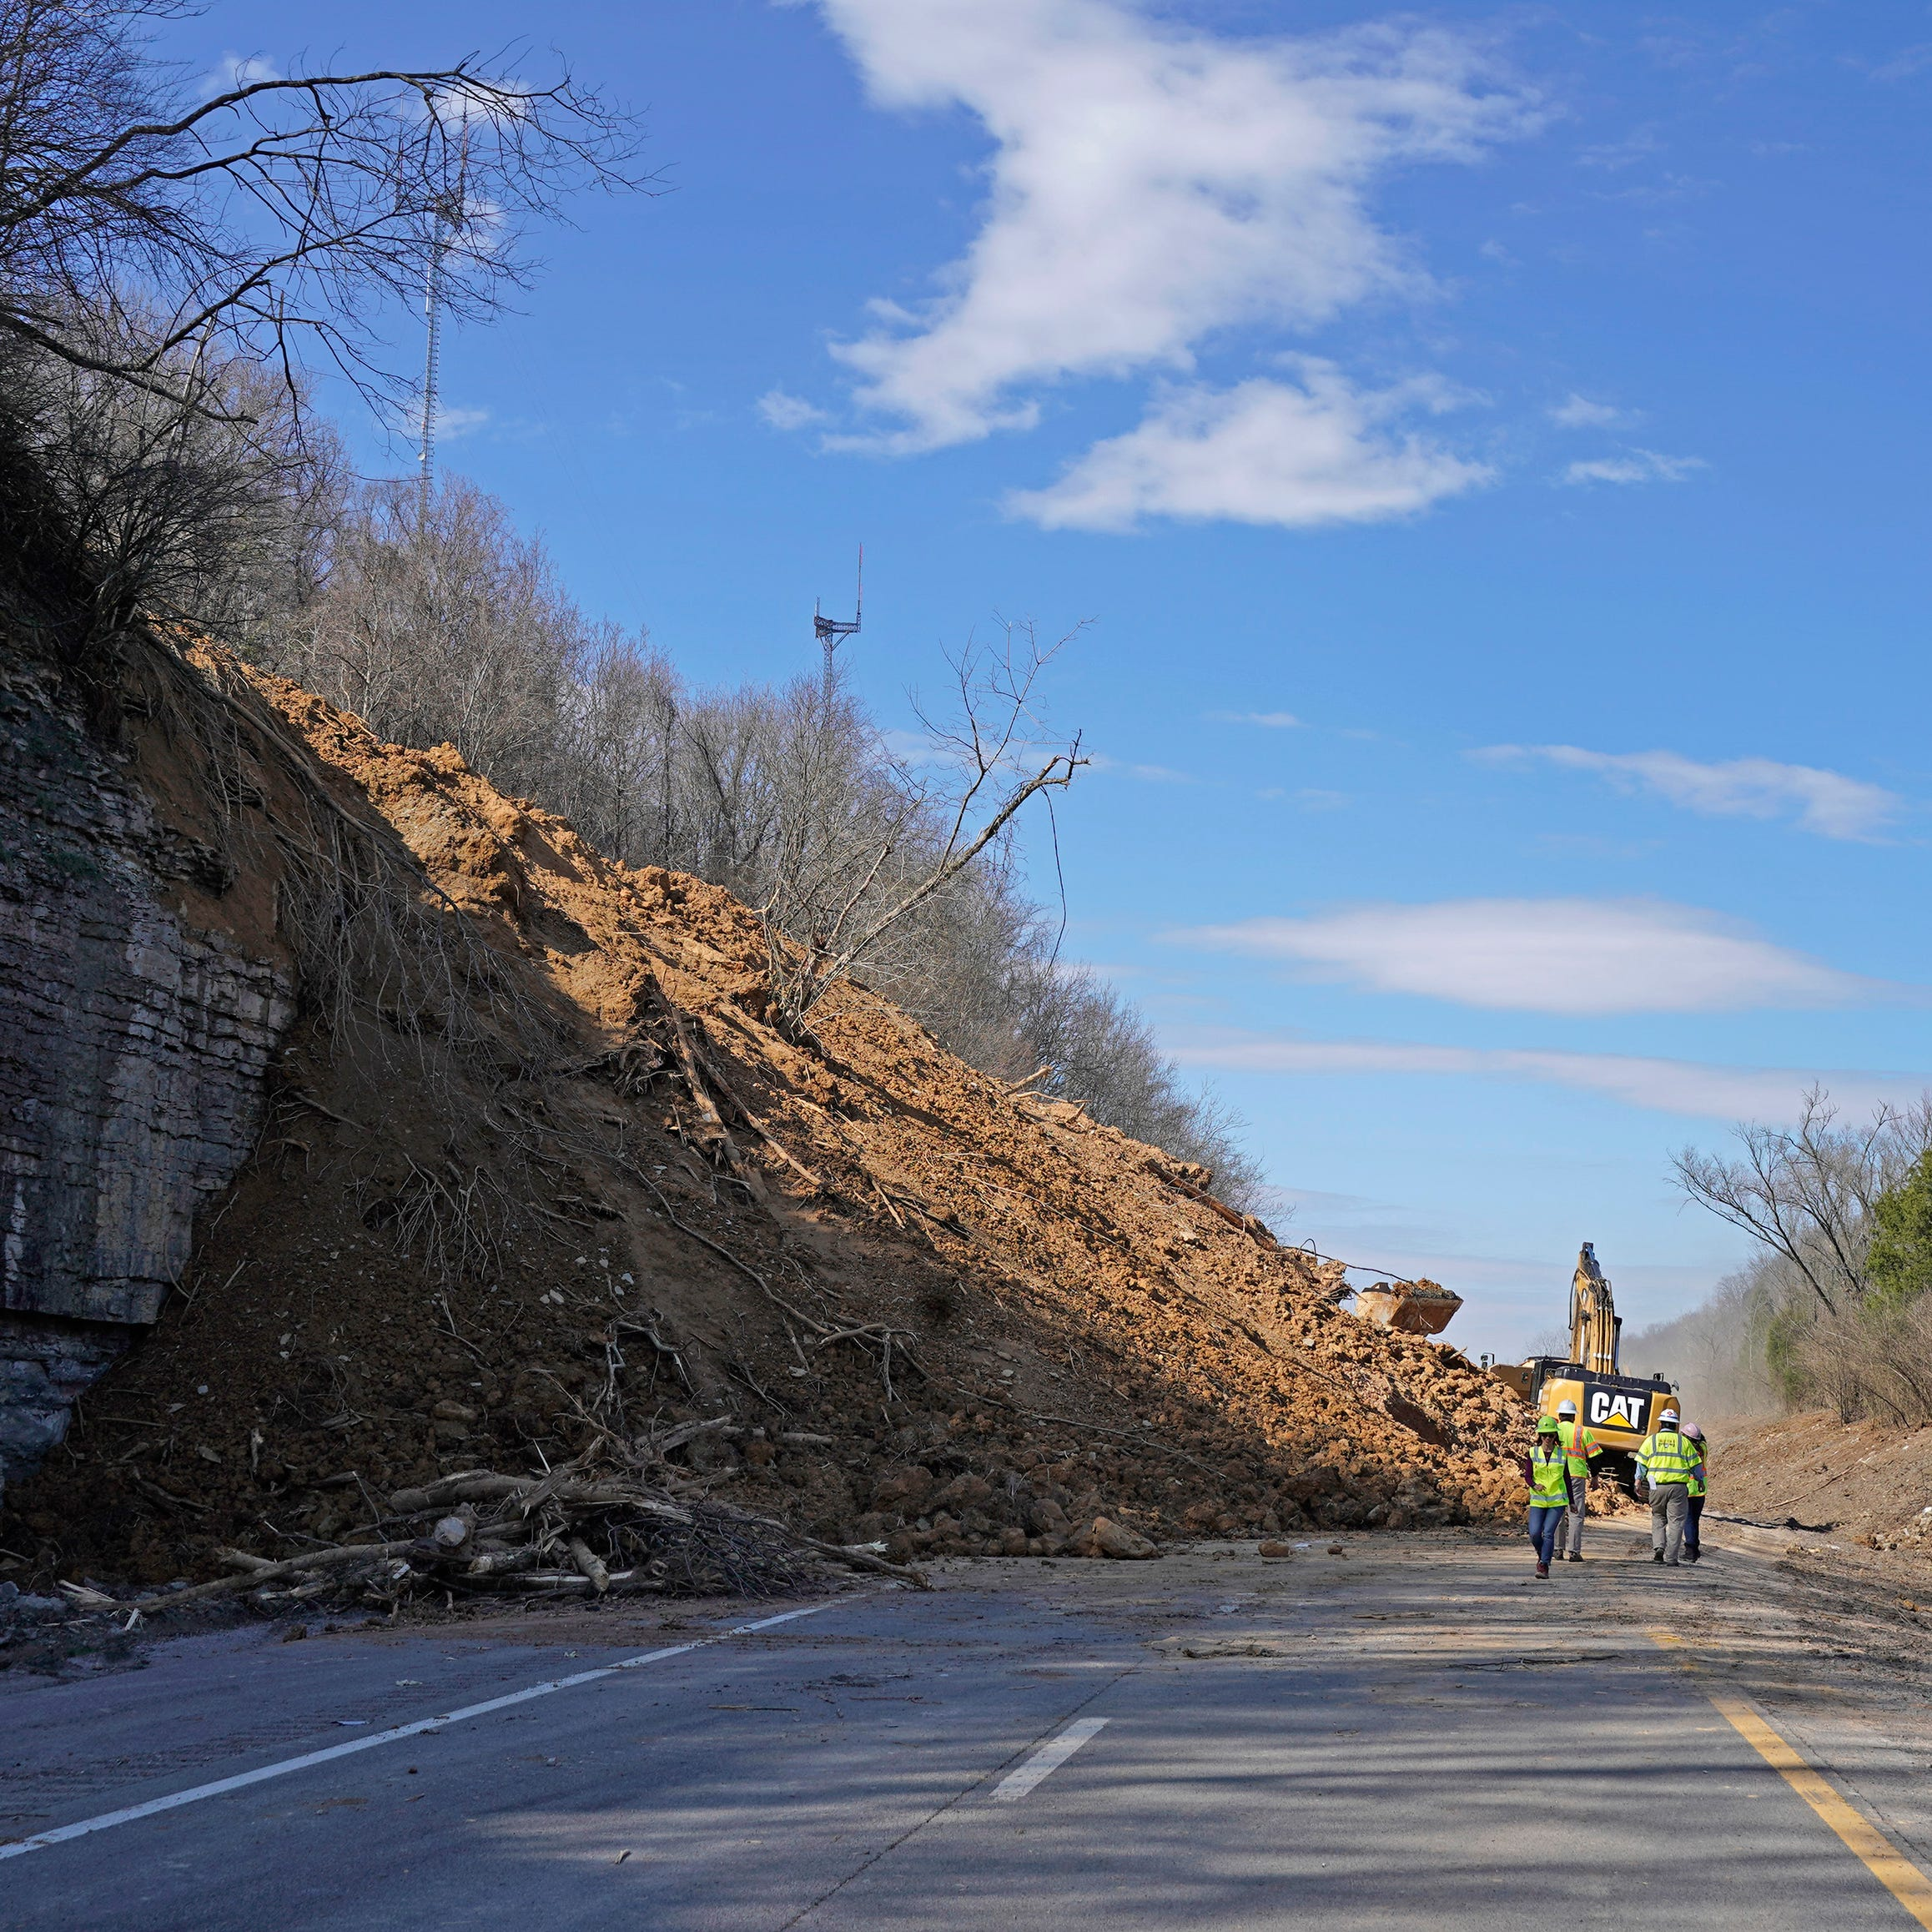 I-24 mudslide: New eastbound lane to open Wednesday, ahead of schedule